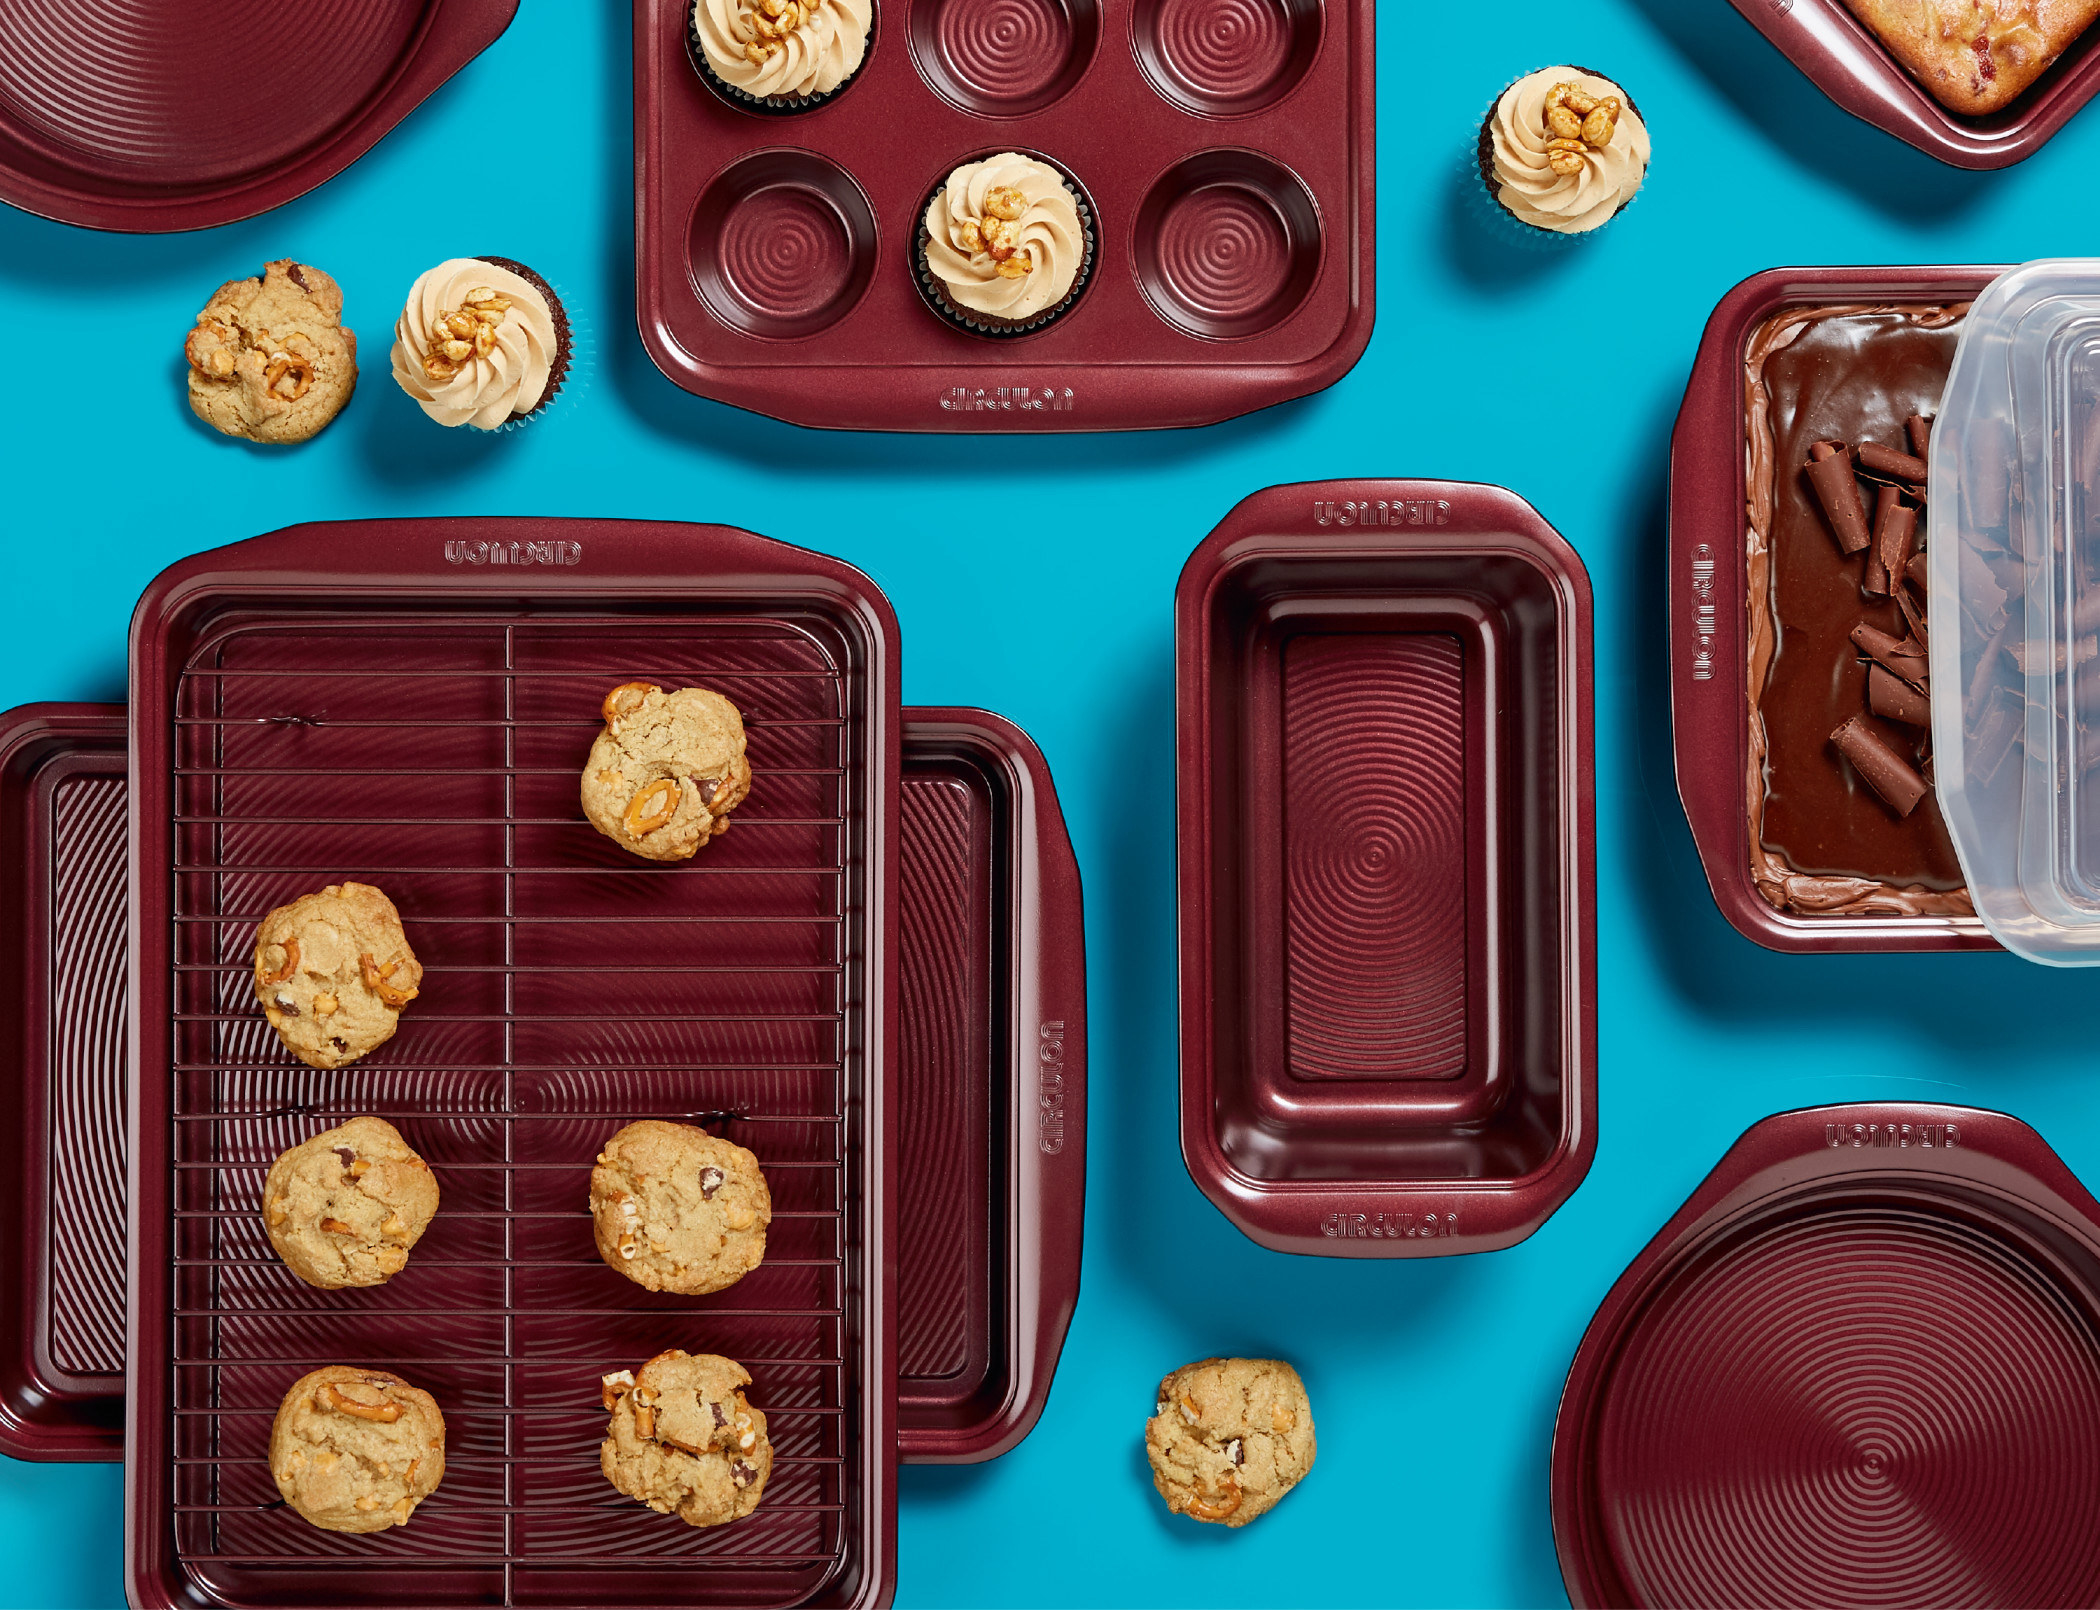 merlot colored bakeware and baked goods on a table, including muffin tin, cake pans, cookie sheet